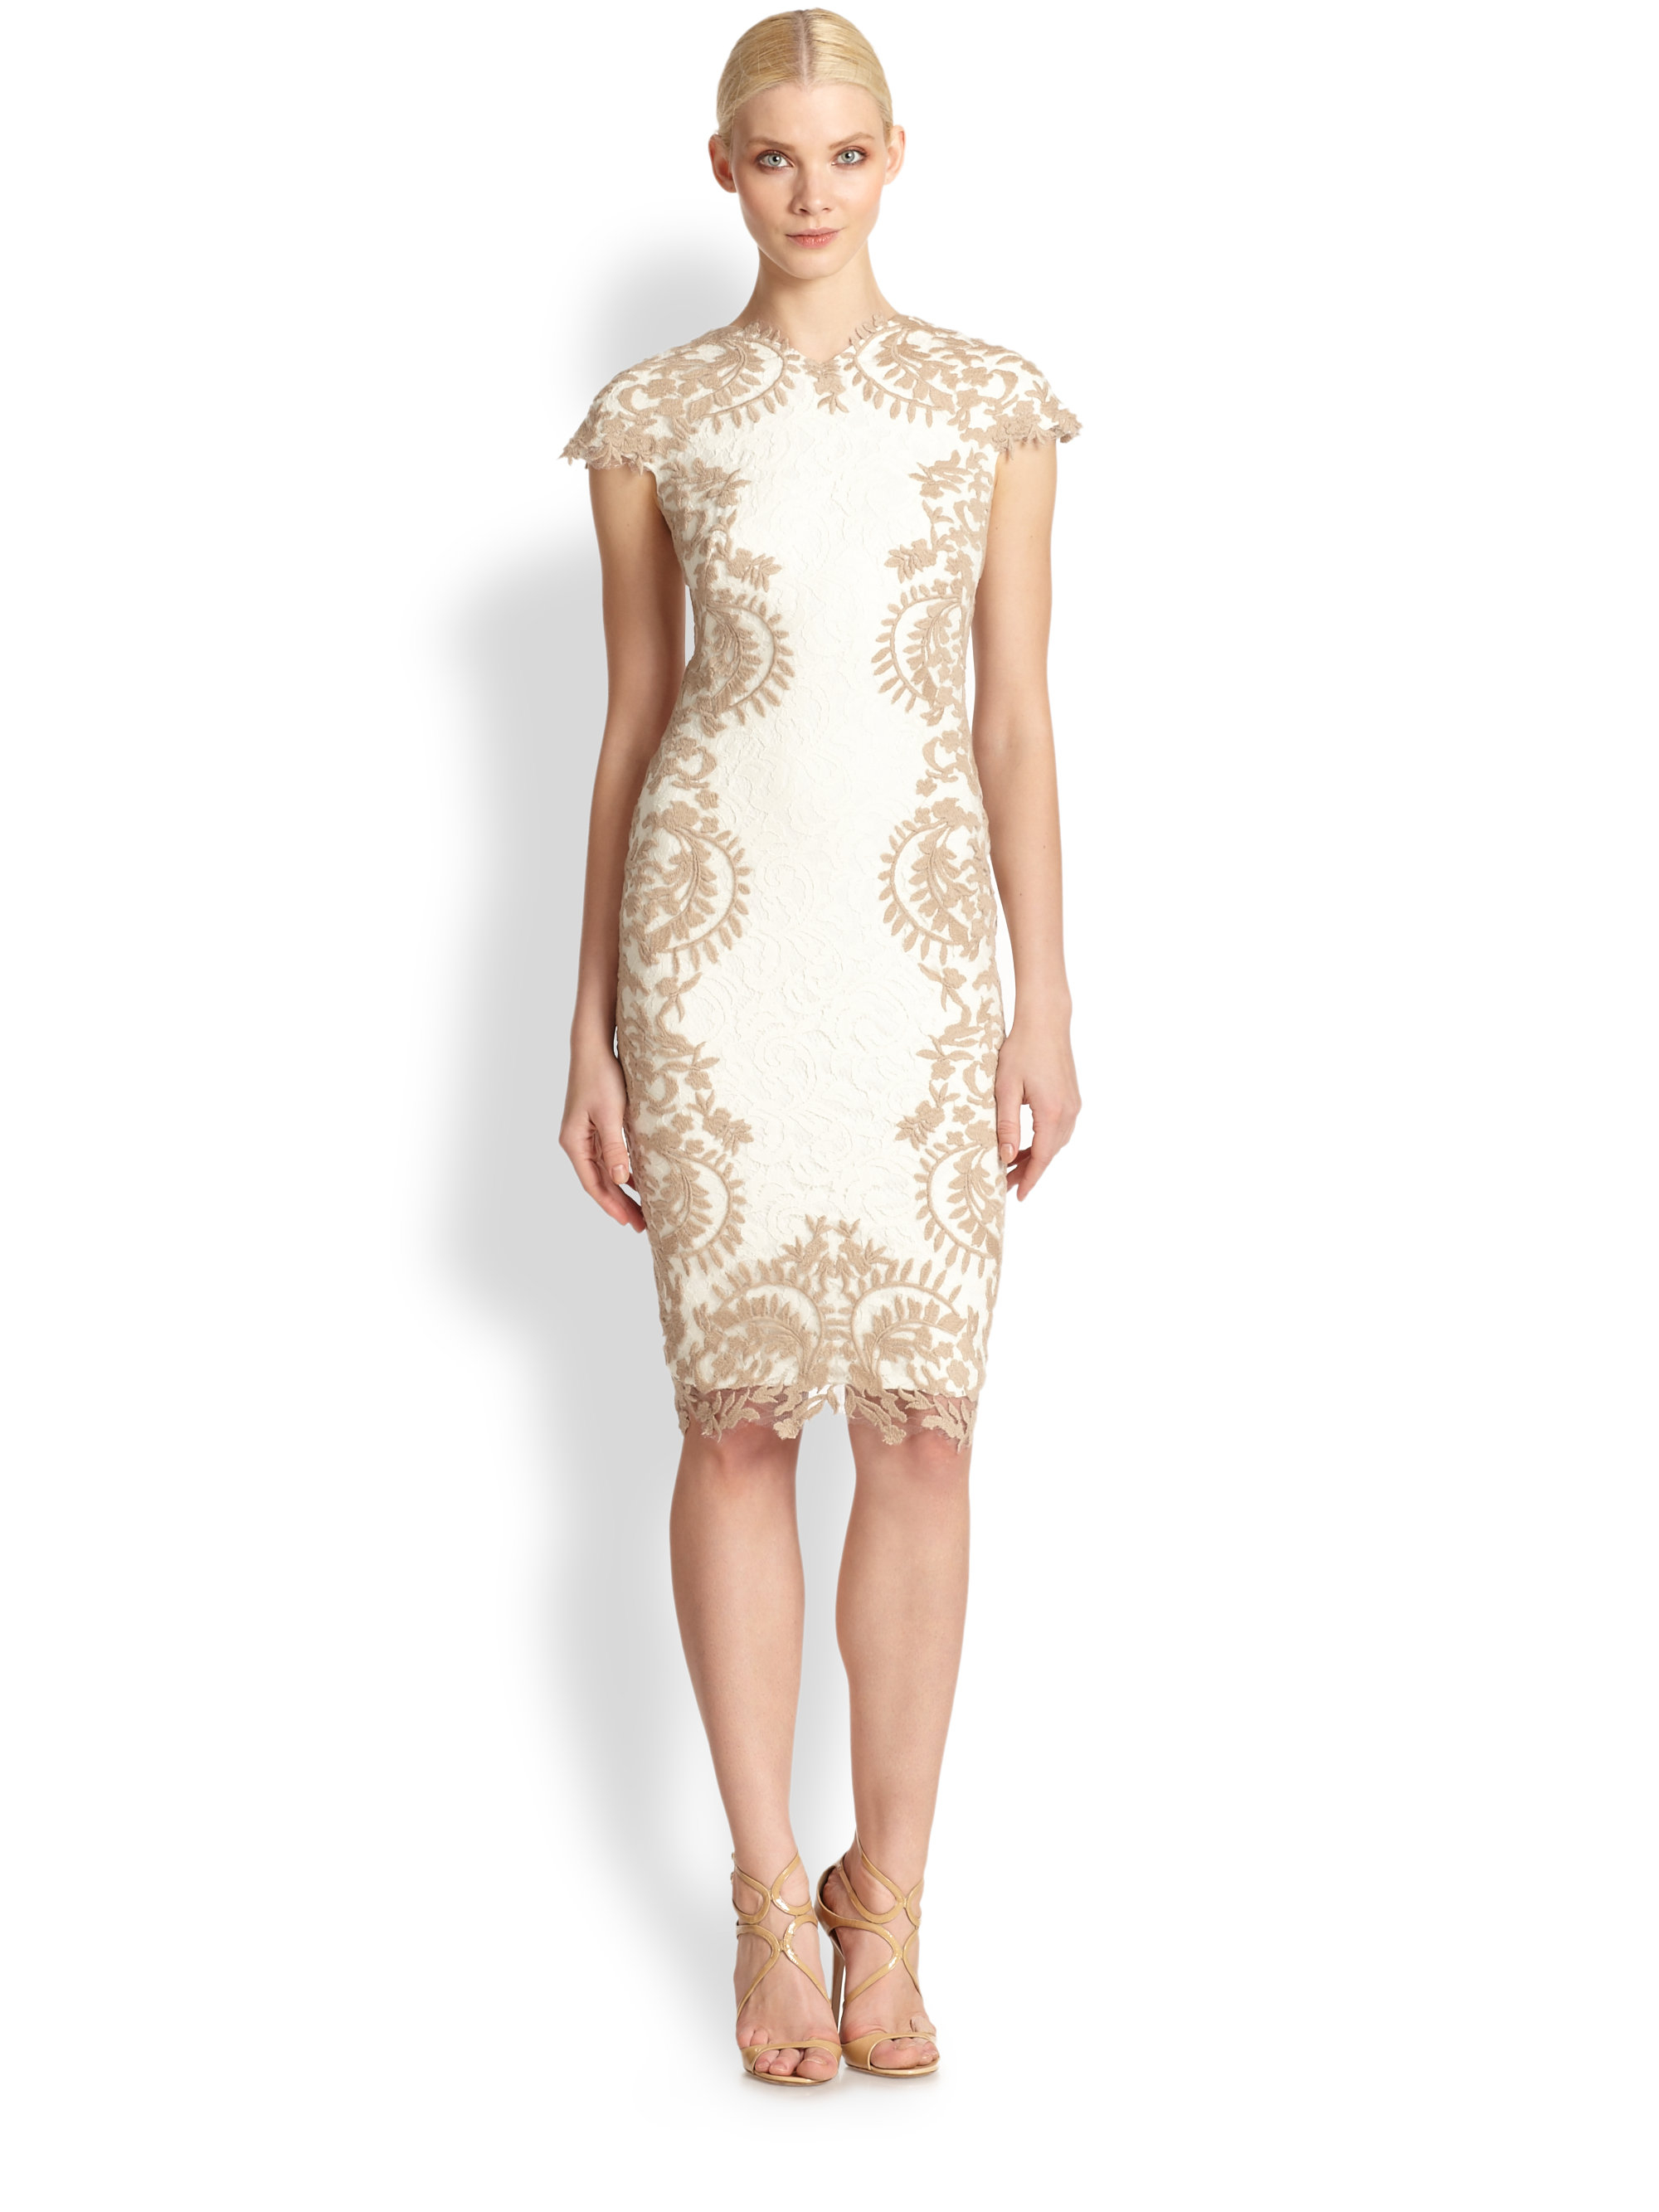 Tadashi shoji Embroidered Cocktail Dress in Natural | Lyst